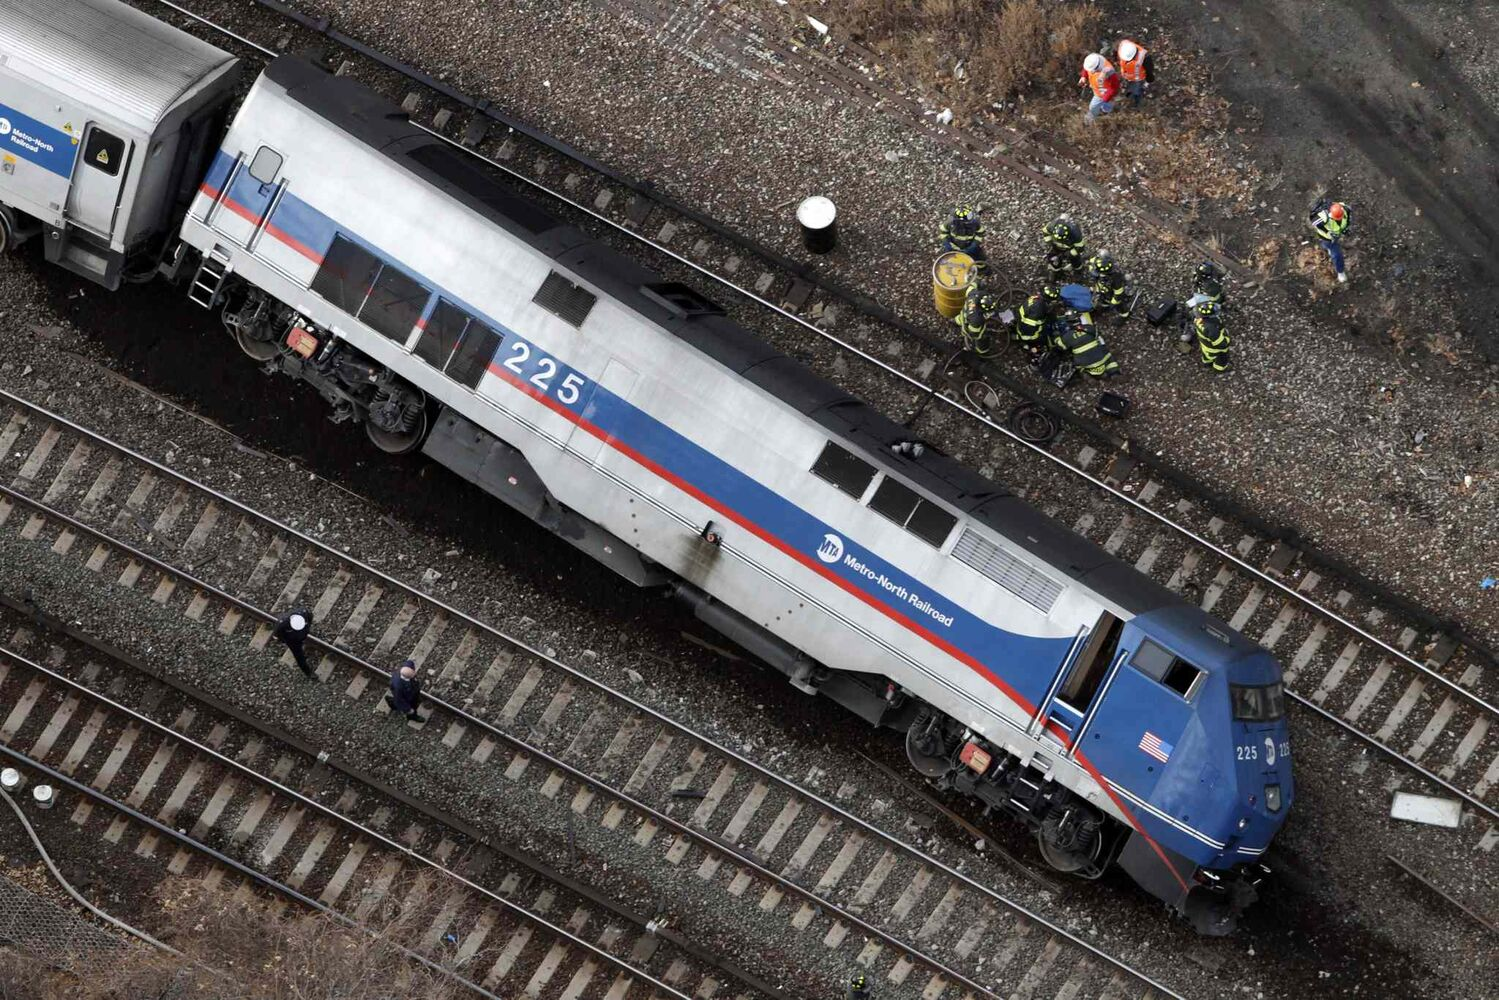 A Metro-North locomotive lies on its side after derailing Sunday in the Bronx borough of New York. (Mark Lennihan / The Associated Press)